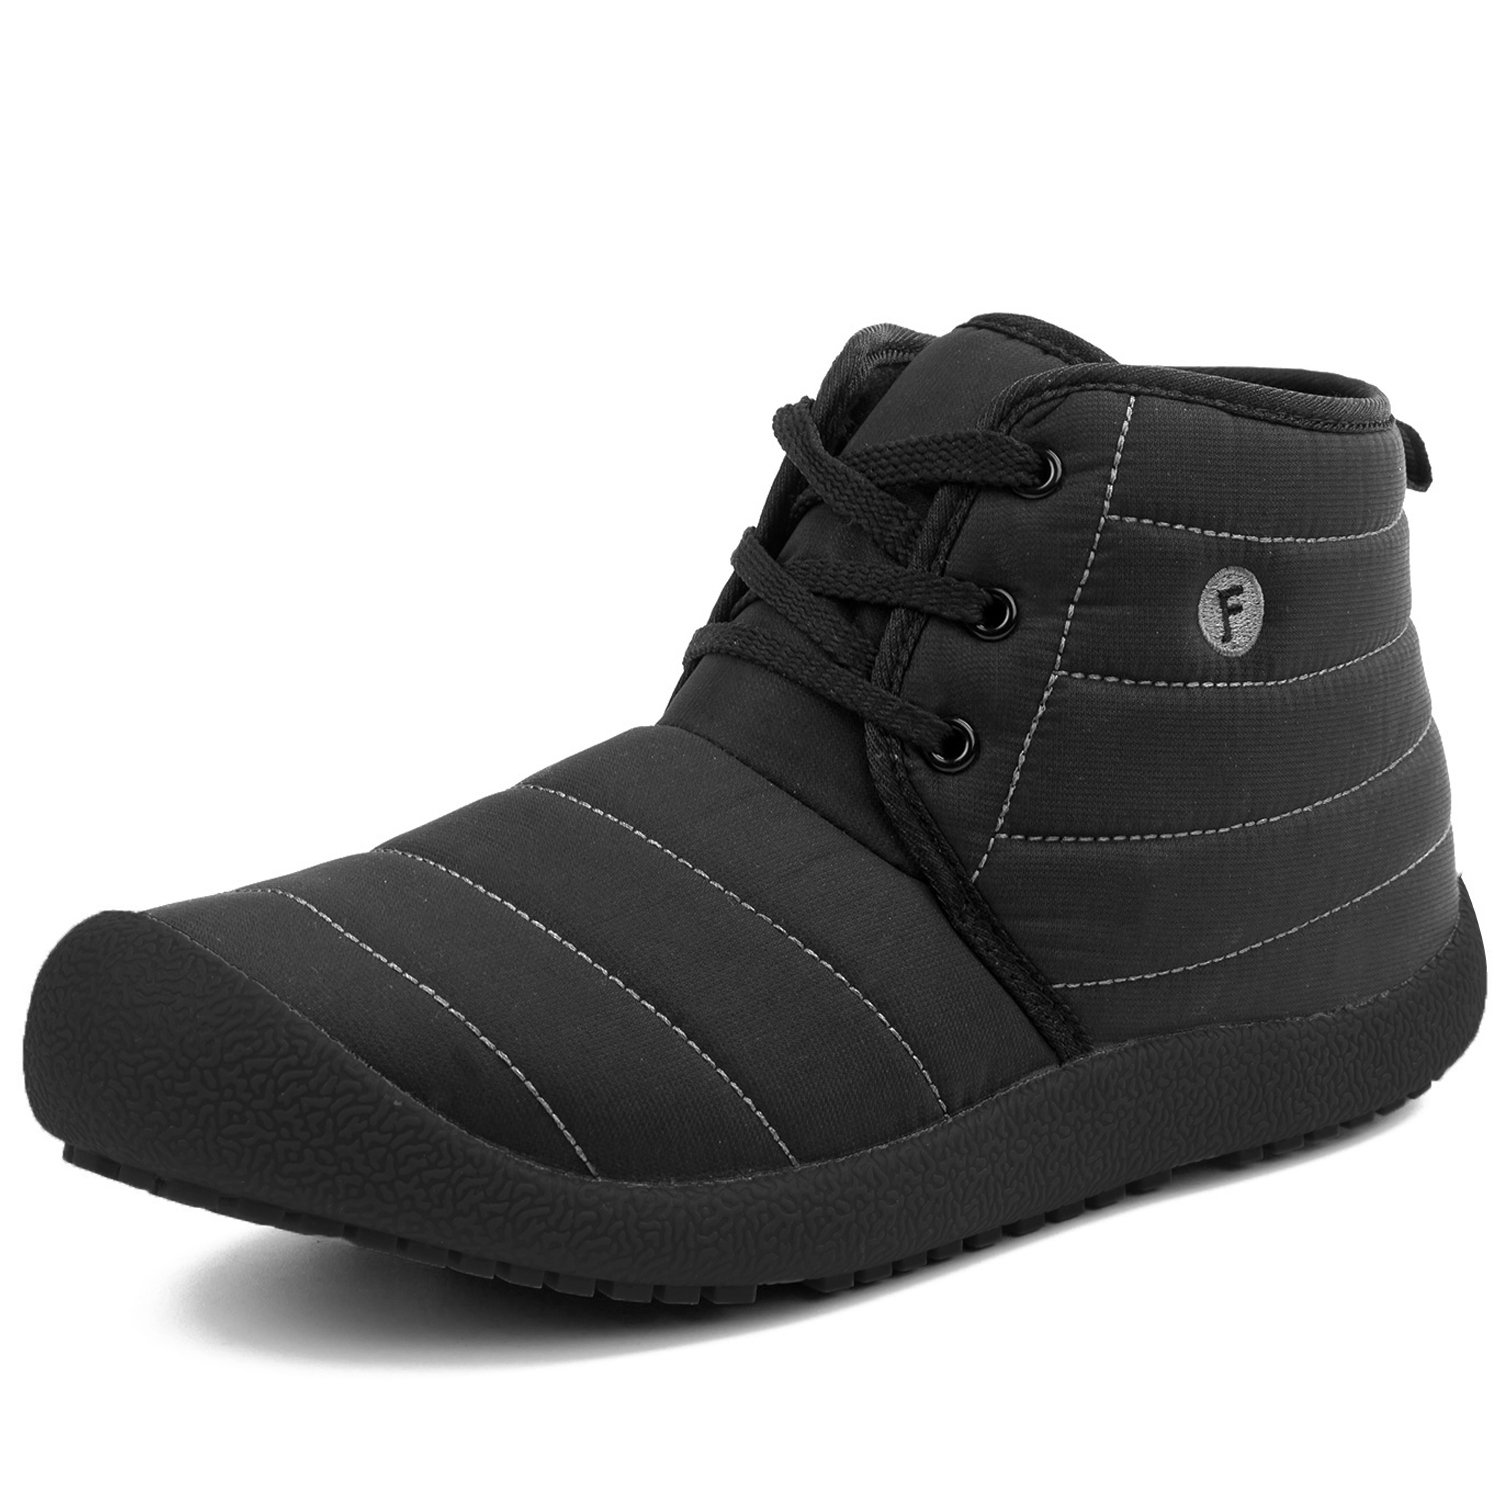 L-RUN Mens Outdoor Shoes Casual Ankle Boots Lightweight Black 9 (D) M US